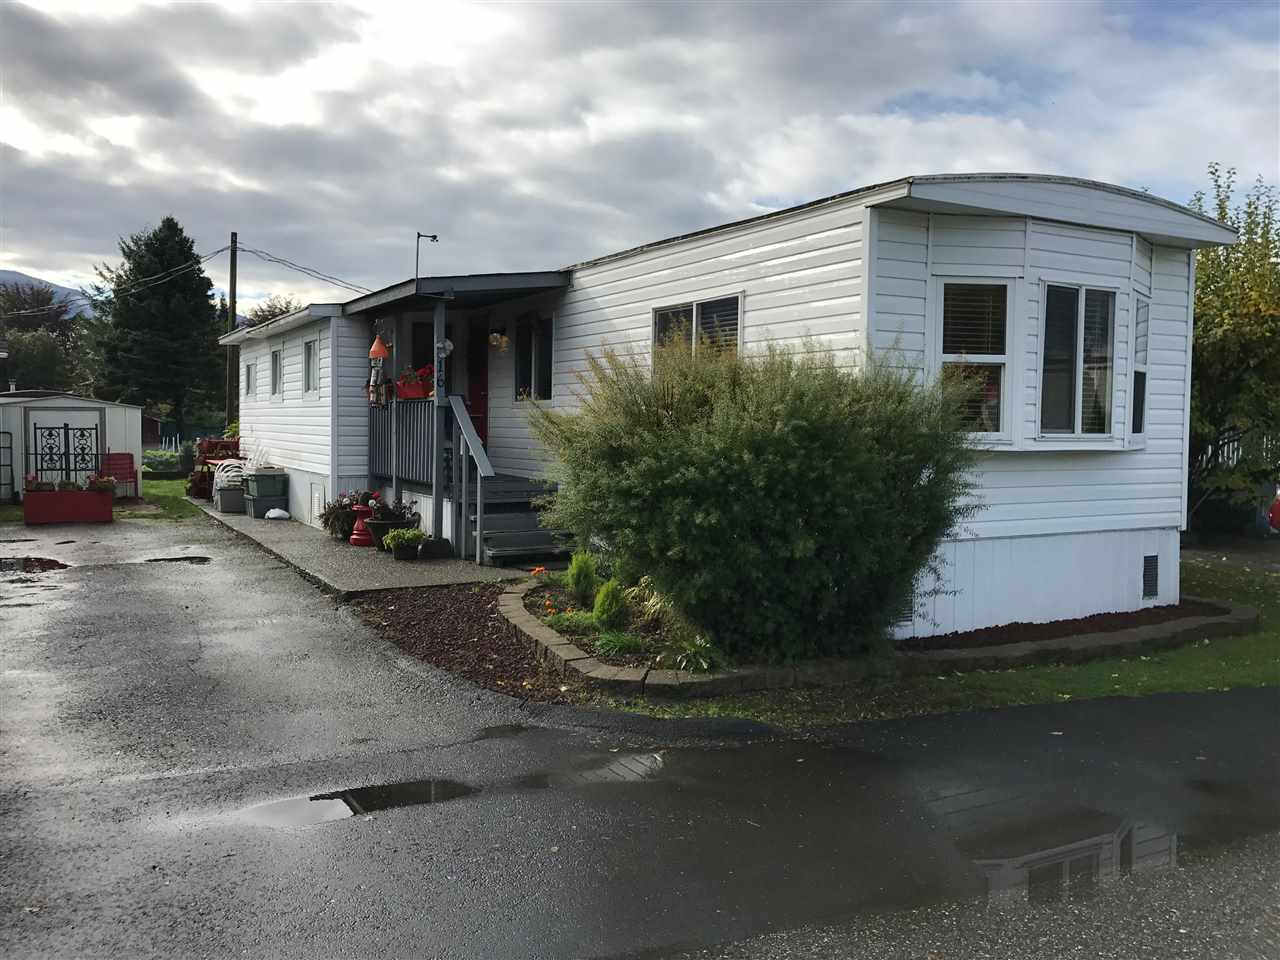 """Gently live in 2 (possibly 3) bedroom mobile home in nice, tidy park in a """"walk to everything"""" central Agassiz location. This home is clean, has a nice open + spacious main living area, and has received some modern touches. White kitchen cabinets have been refaced, and some windows have been upgraded. Plenty of storage in the added utility/storage rooms. Enjoy your morning coffee and Mt. Cheam views from your covered front porch. A little added privacy with the large green space behind, and there's two garden beds for the outdoor enthusiast. Exterior storage shed too. Pad rent will be $520.00 & includes garbage, sewer, street lighting, & snow removal. An affordable opportunity in Agassiz."""